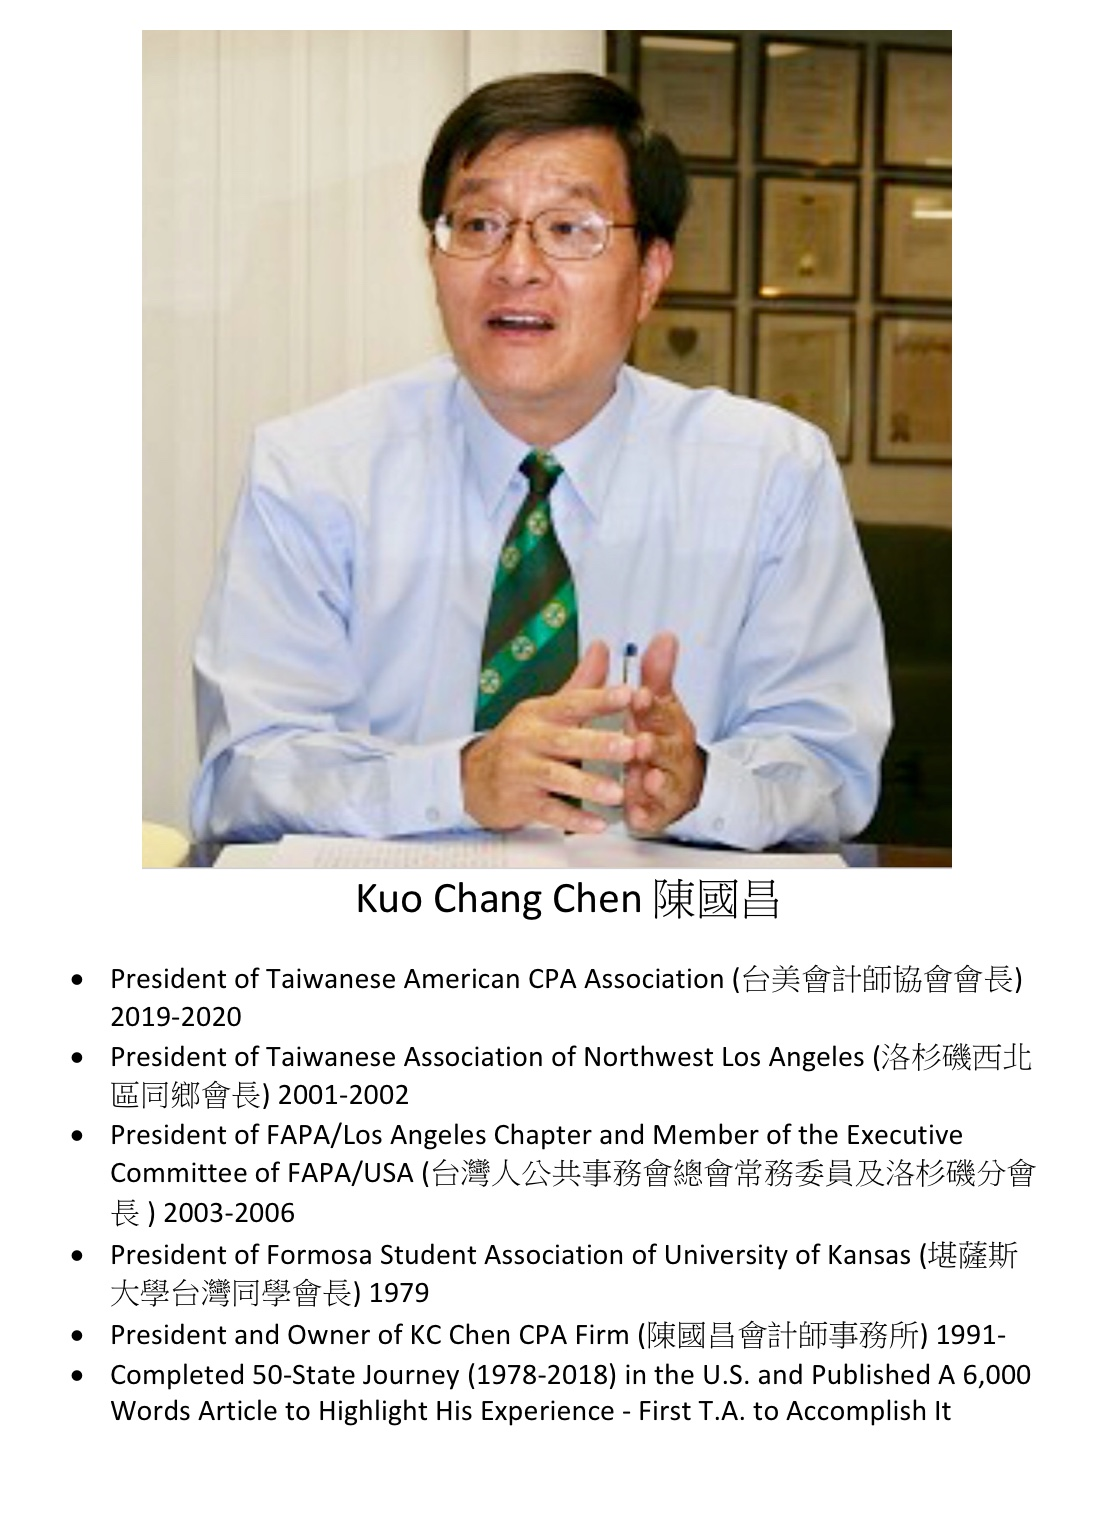 249. Kuo Chang Chen 陳國昌